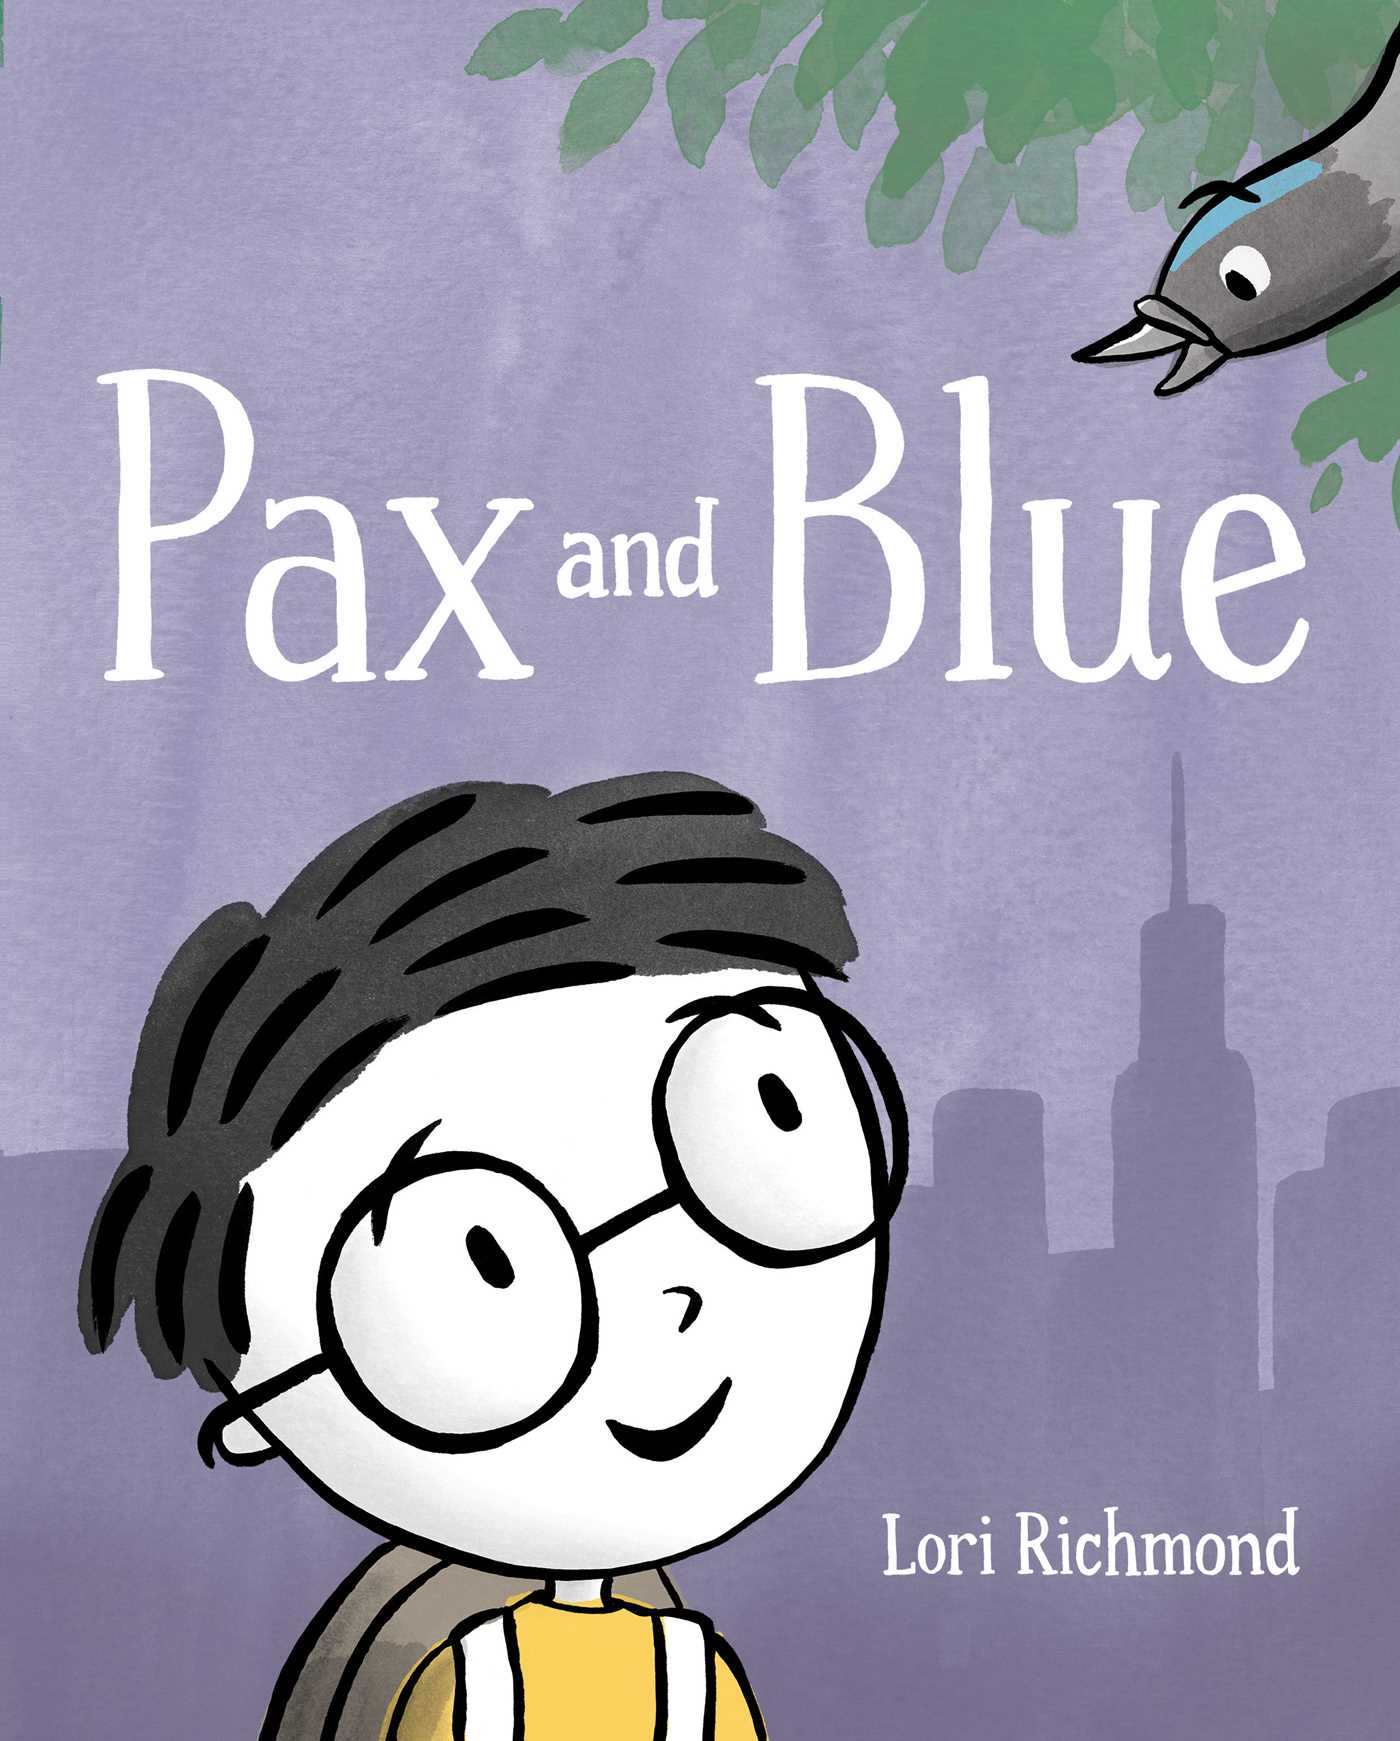 Pax and blue 9781481451321 hr